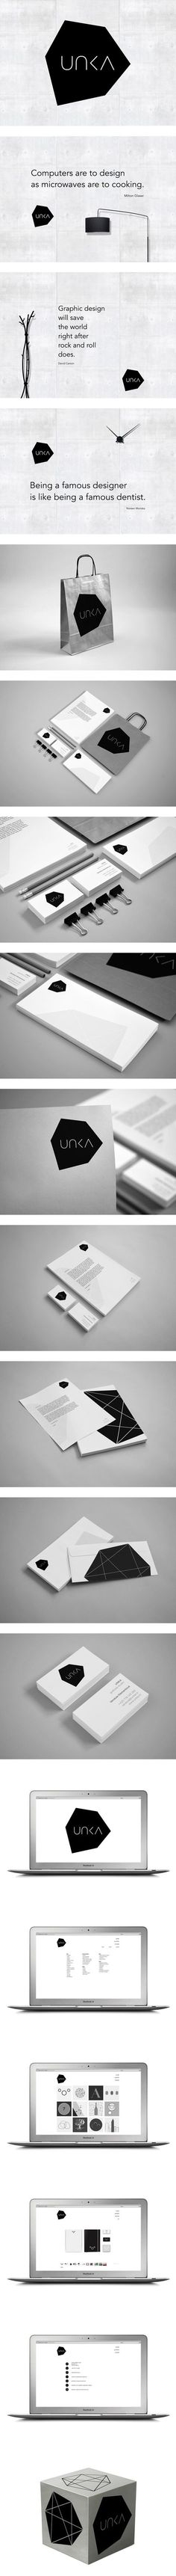 UNKA by Ven Klement, via Behance #identity #packaging #branding